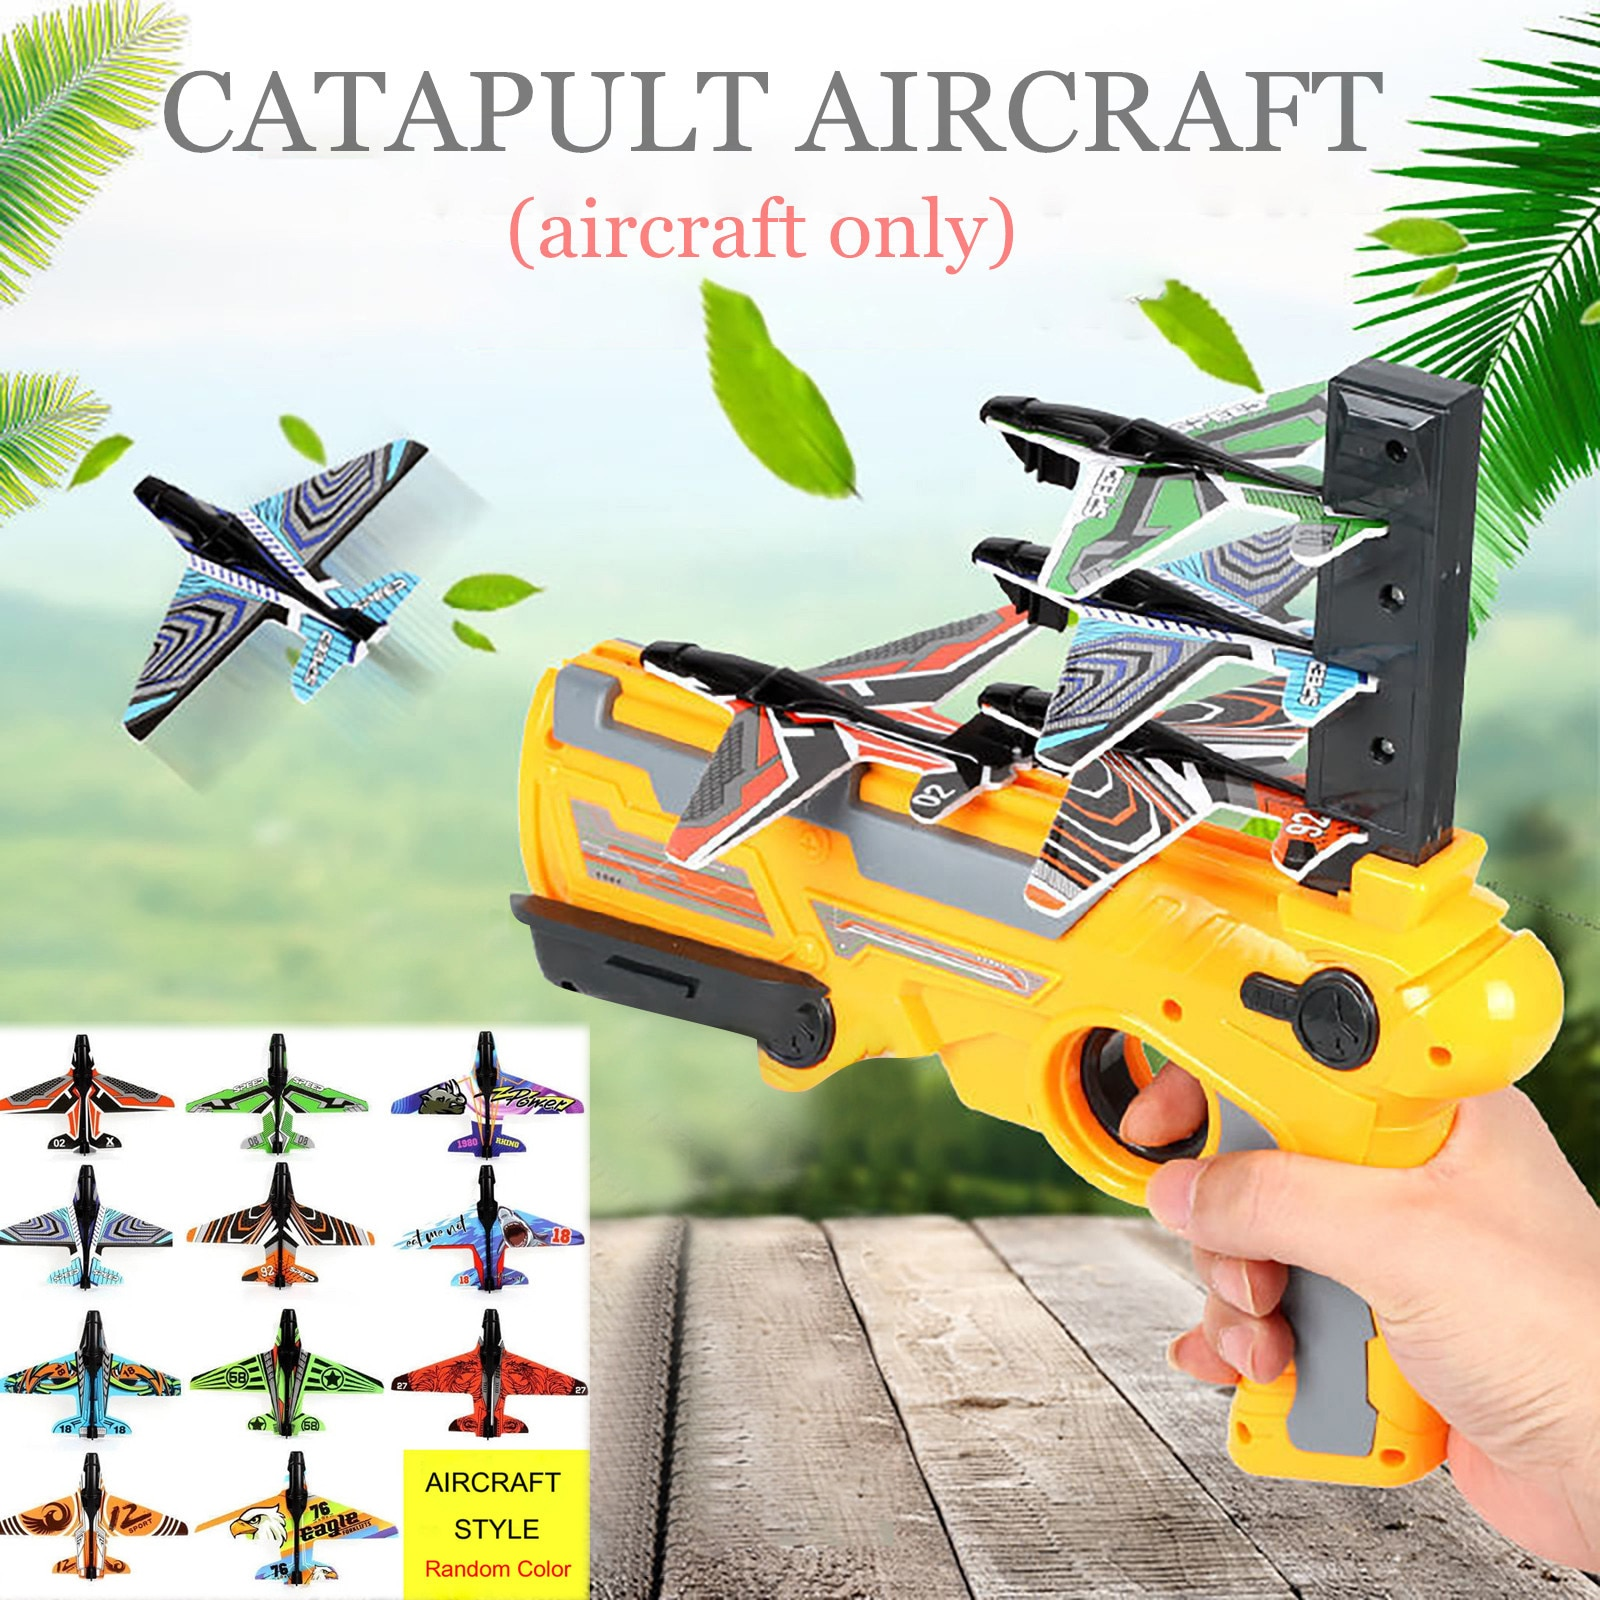 Blue One-Click Ejection Model Foam Airplane with 4 Pcs Glider Airplane Launcher Bubble Catapult Plane Toy Airplane Fun Outdoor Sport Toys Gifts Shooting Game Toy for Kids